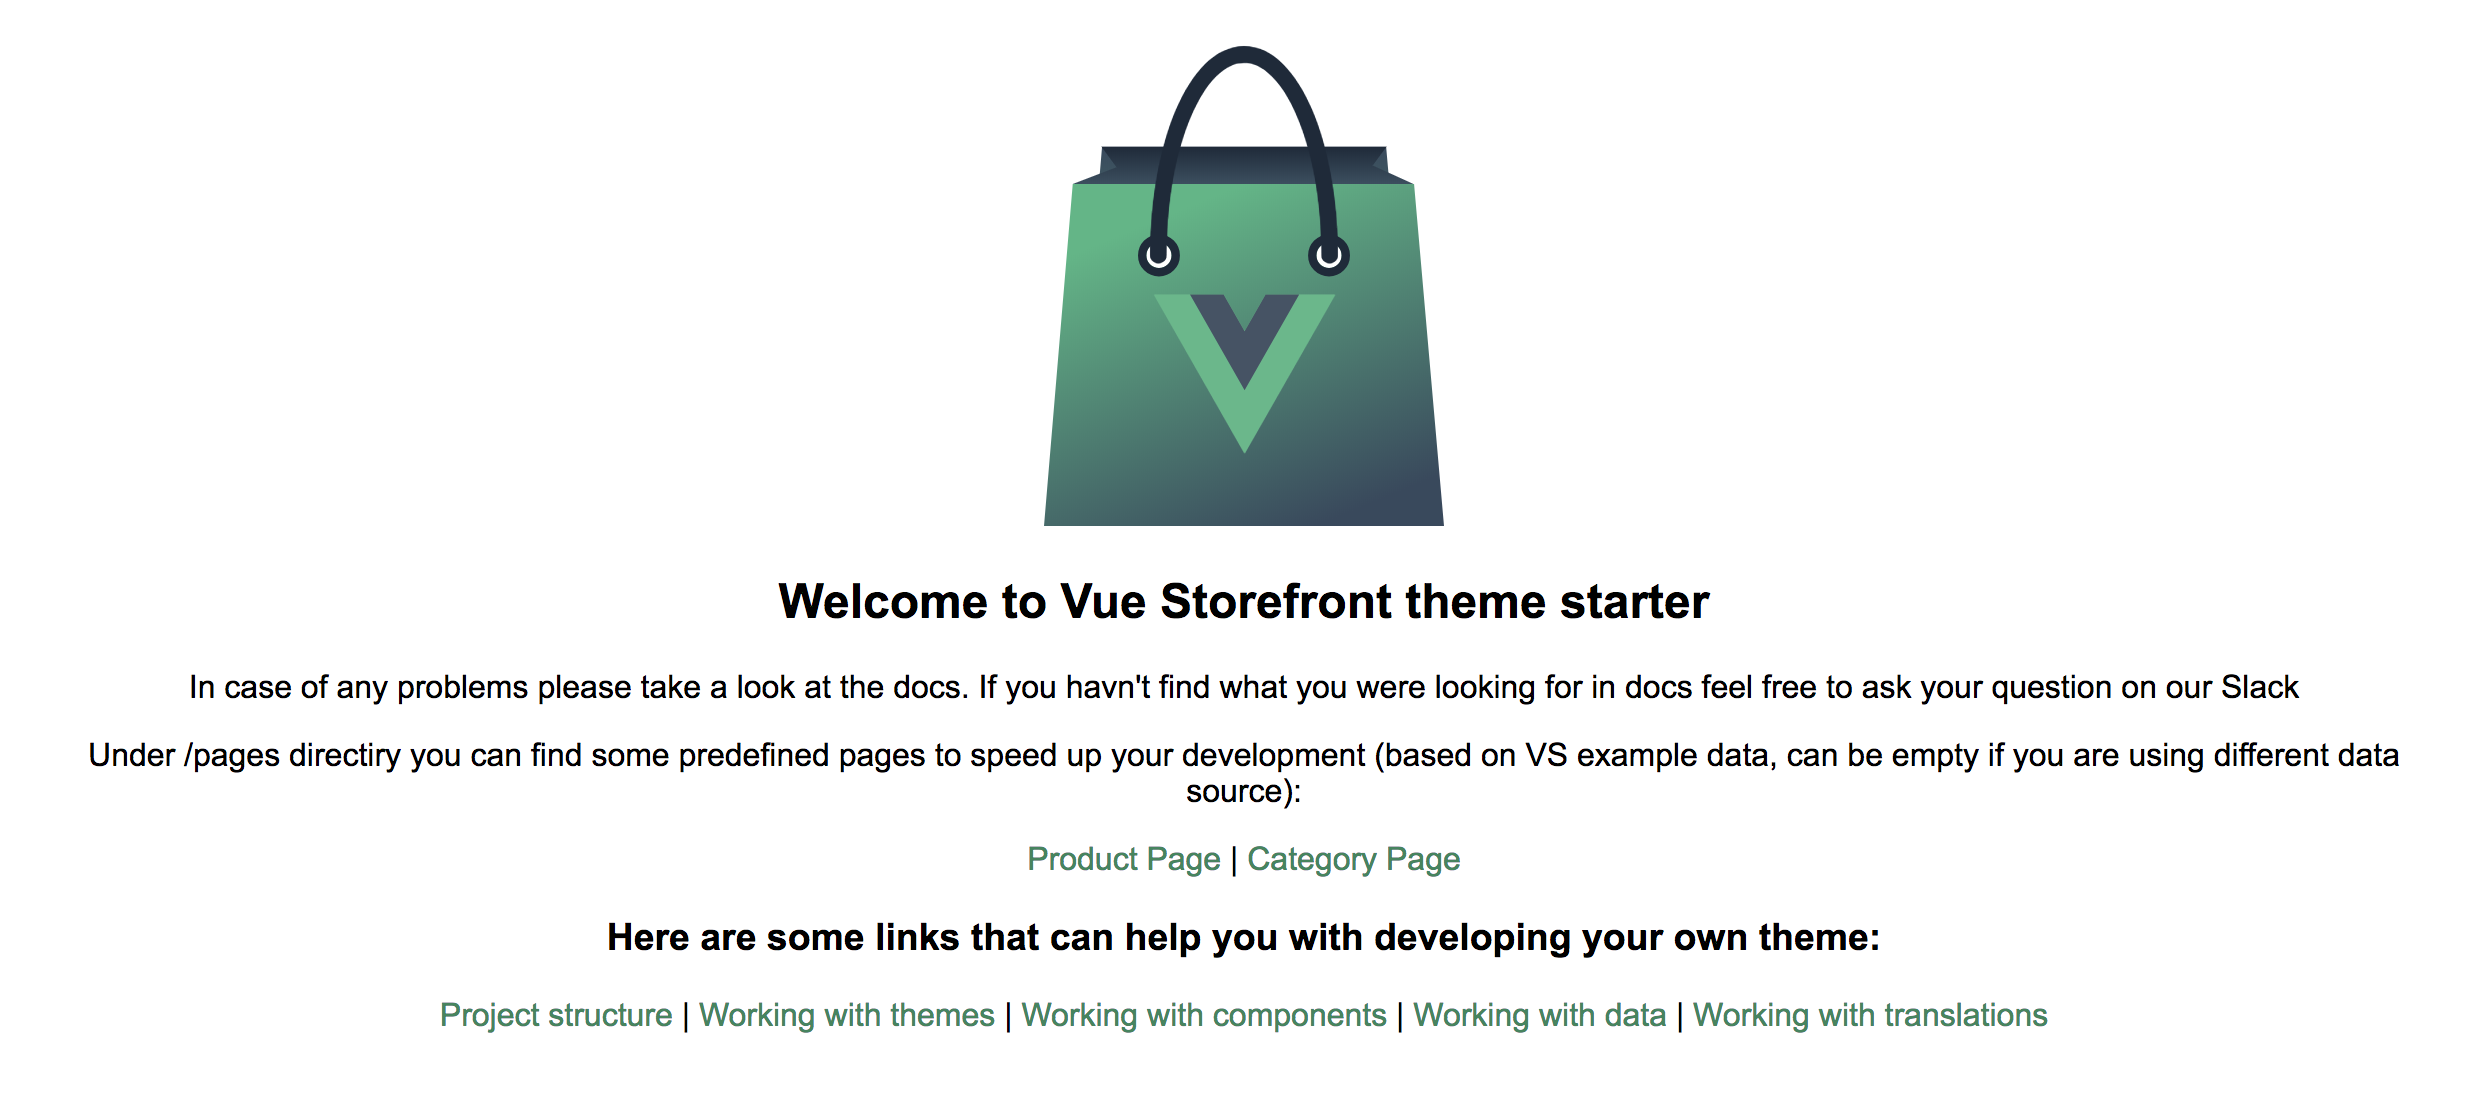 Creating themes in Vue Storefront (part 2 — Vue Storefront